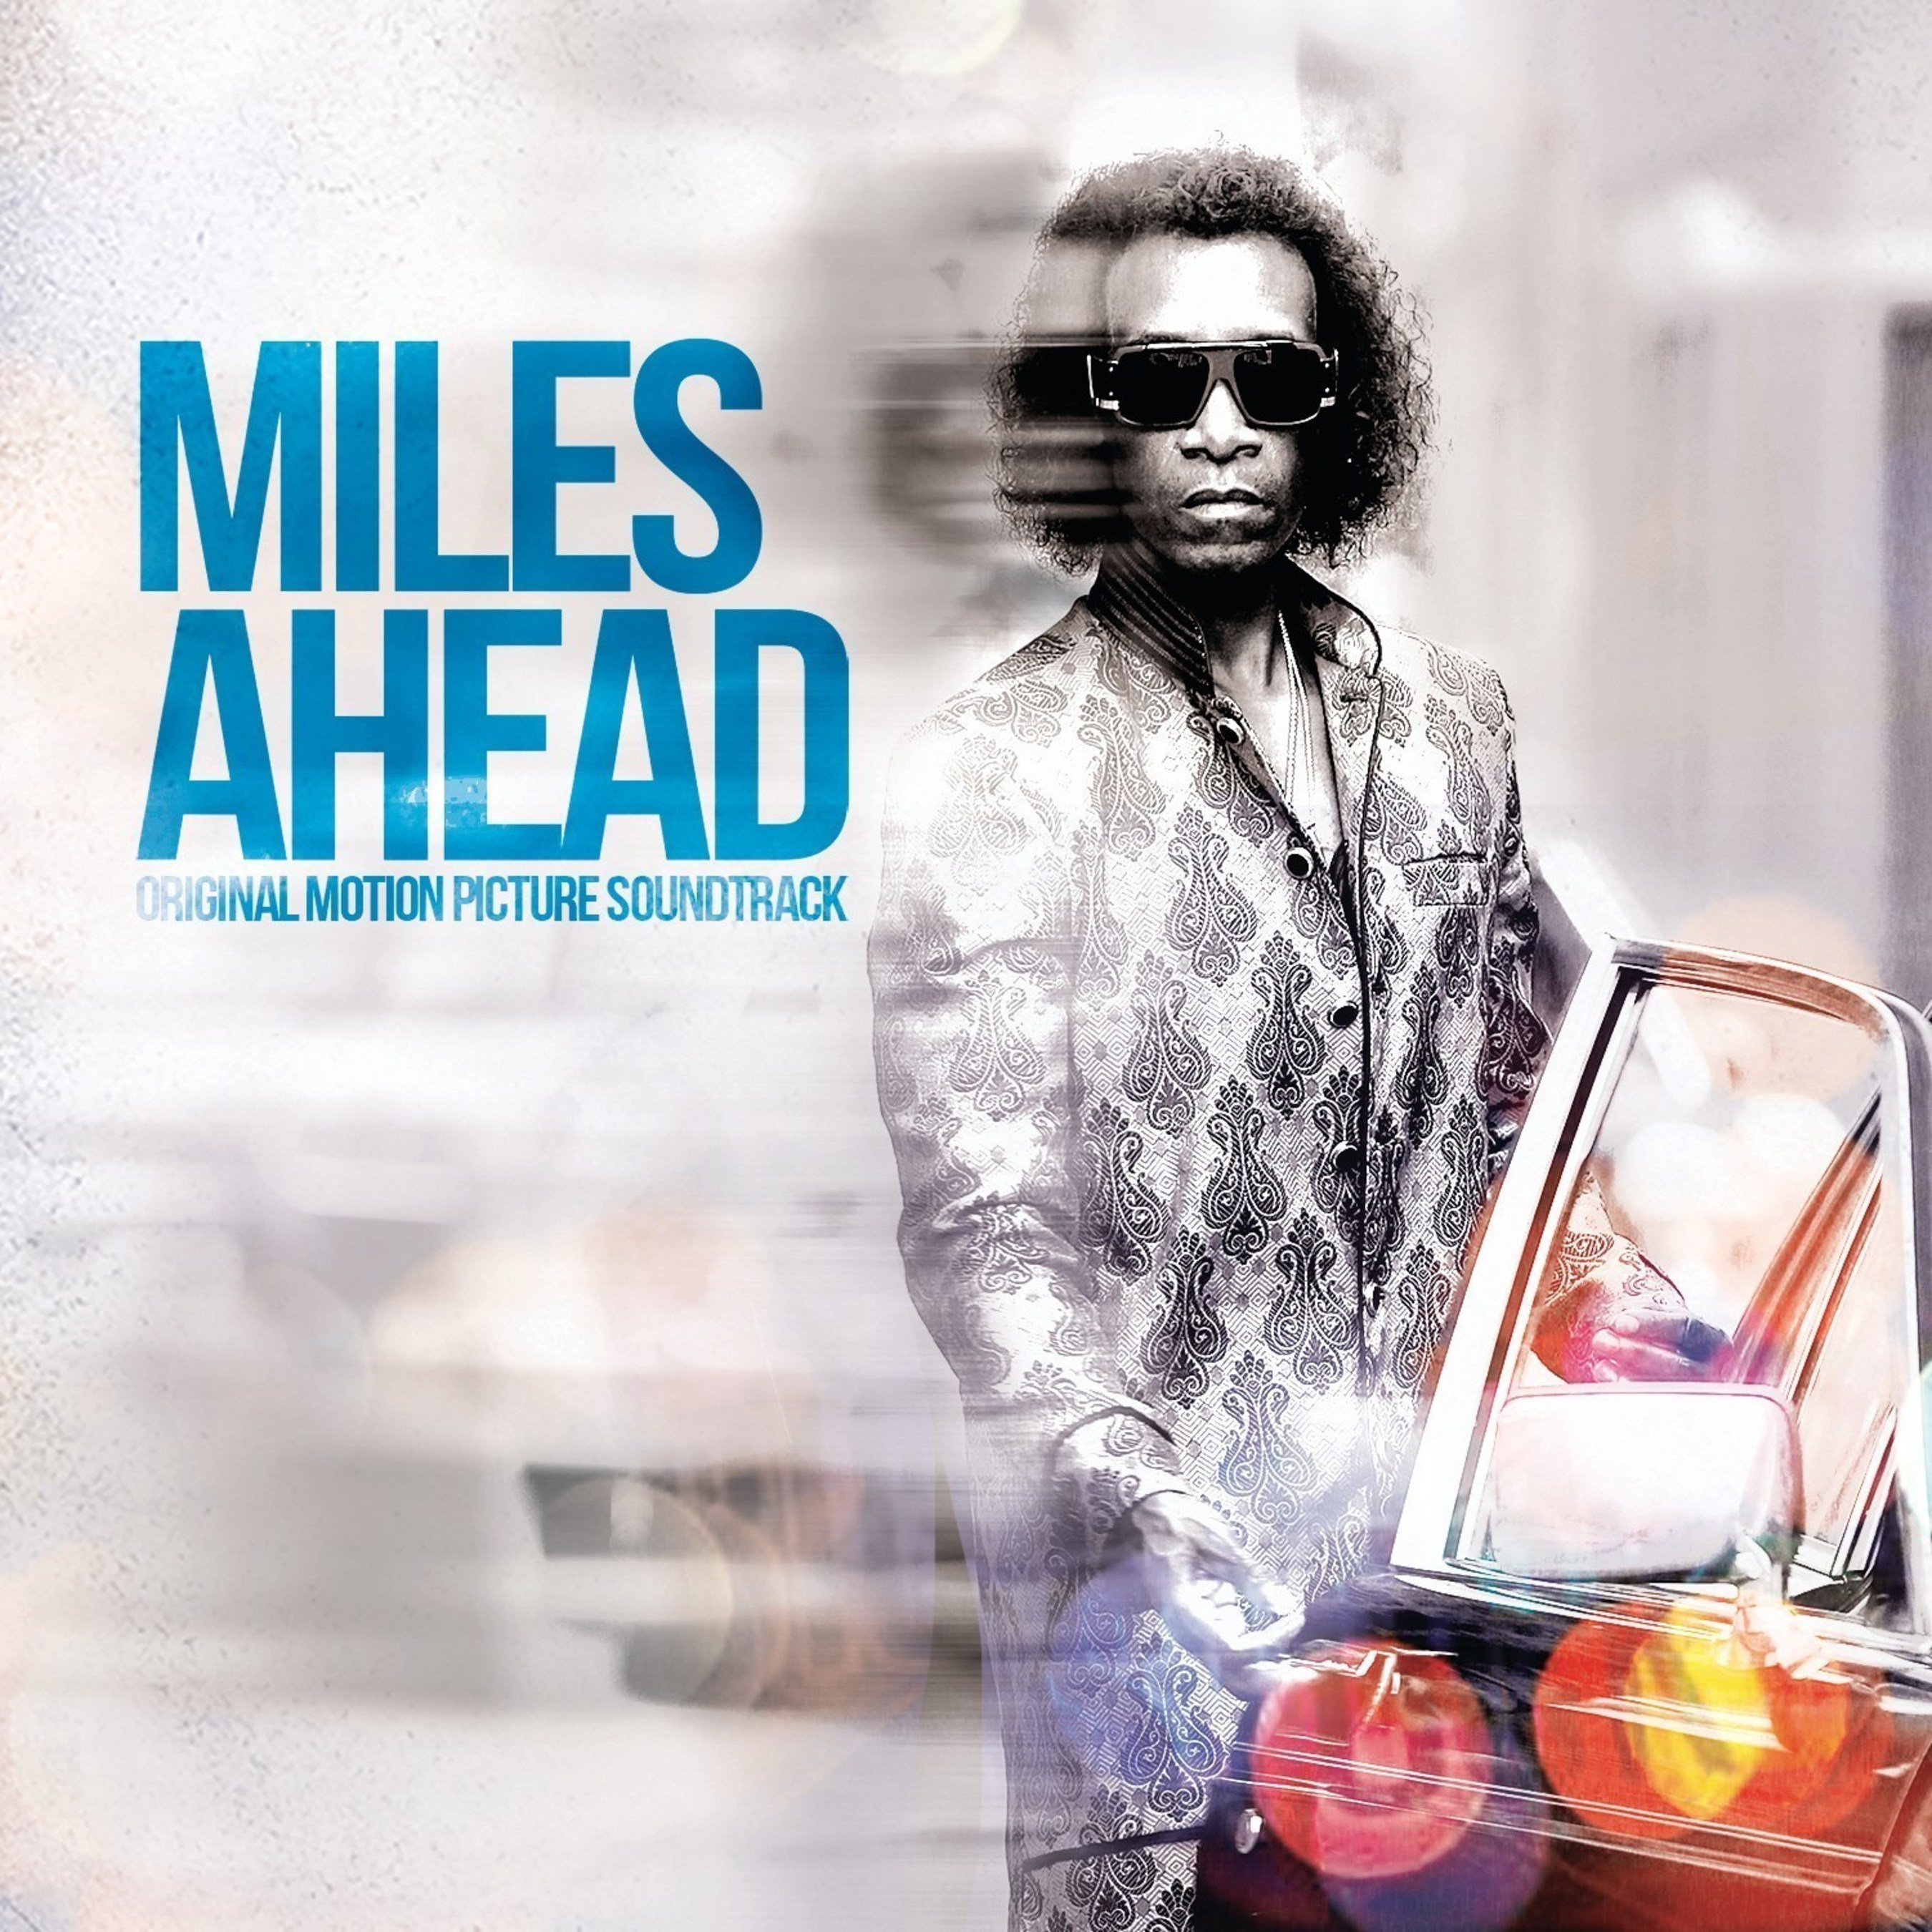 "MILES AHEAD - Original Motion Picture Soundtrack will be available Friday, April 1. A cinematic exploration of the life and music of Miles Davis, the movie feature ""MILES AHEAD"" marks the directorial debut of Don Cheadle, who co-wrote the screenplay (with Steven Baigelman) and stars as the legendary musician in the film."